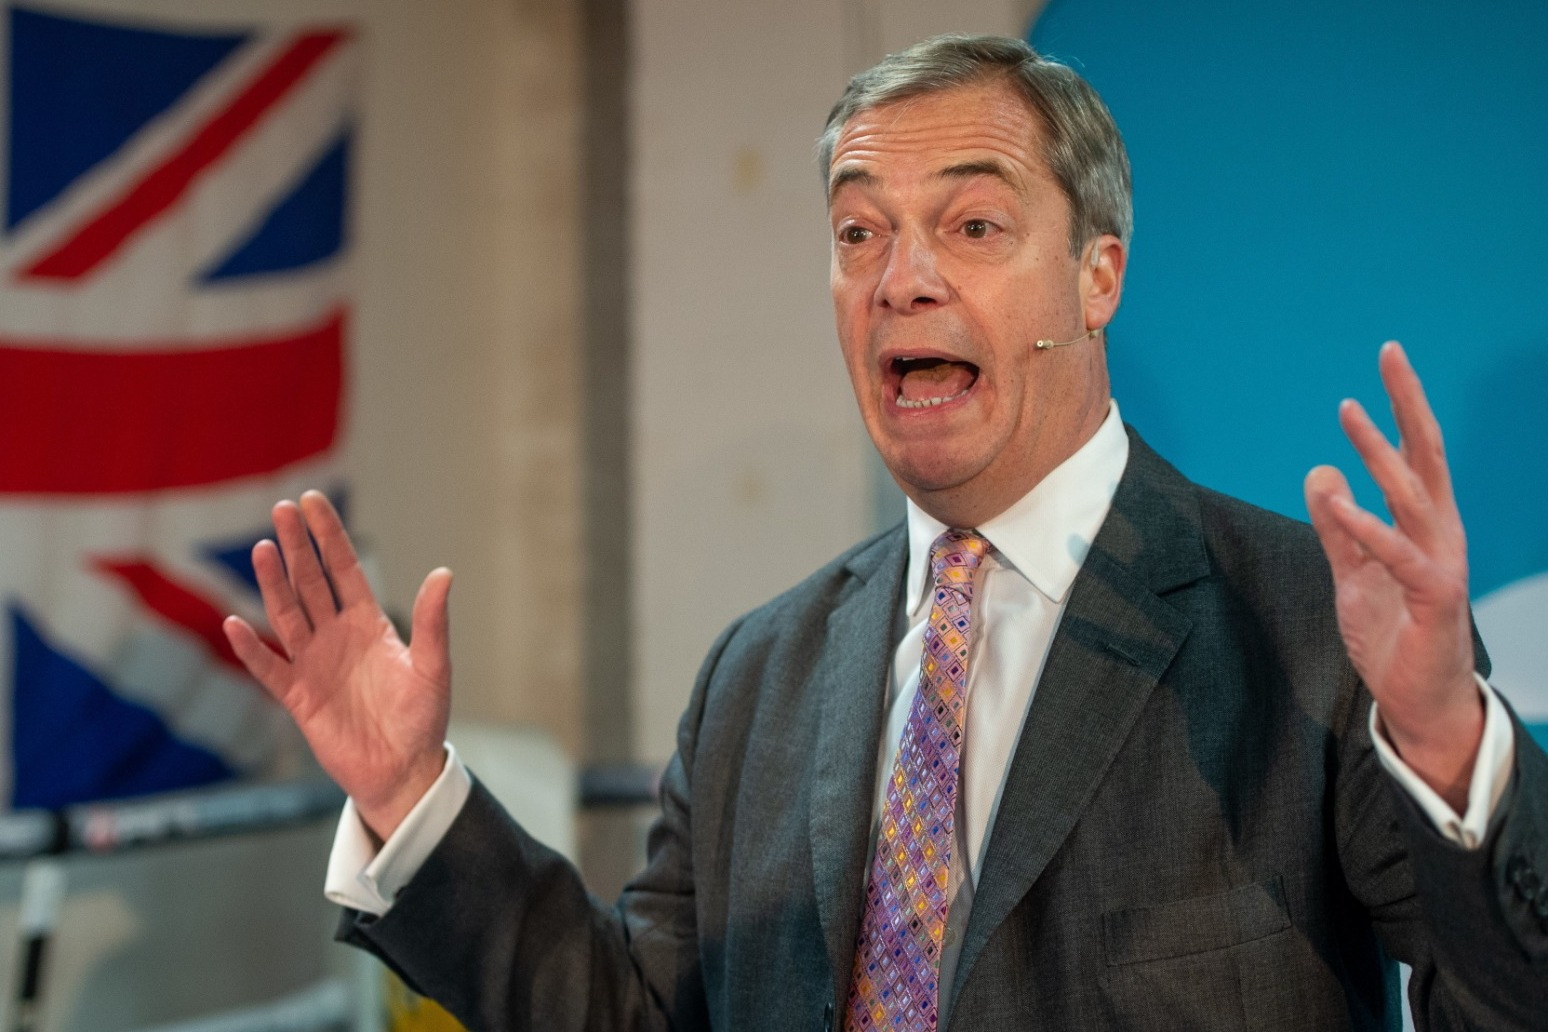 PRESSURE ON FARAGE TO PULL CANDIDATES FROM SEATS